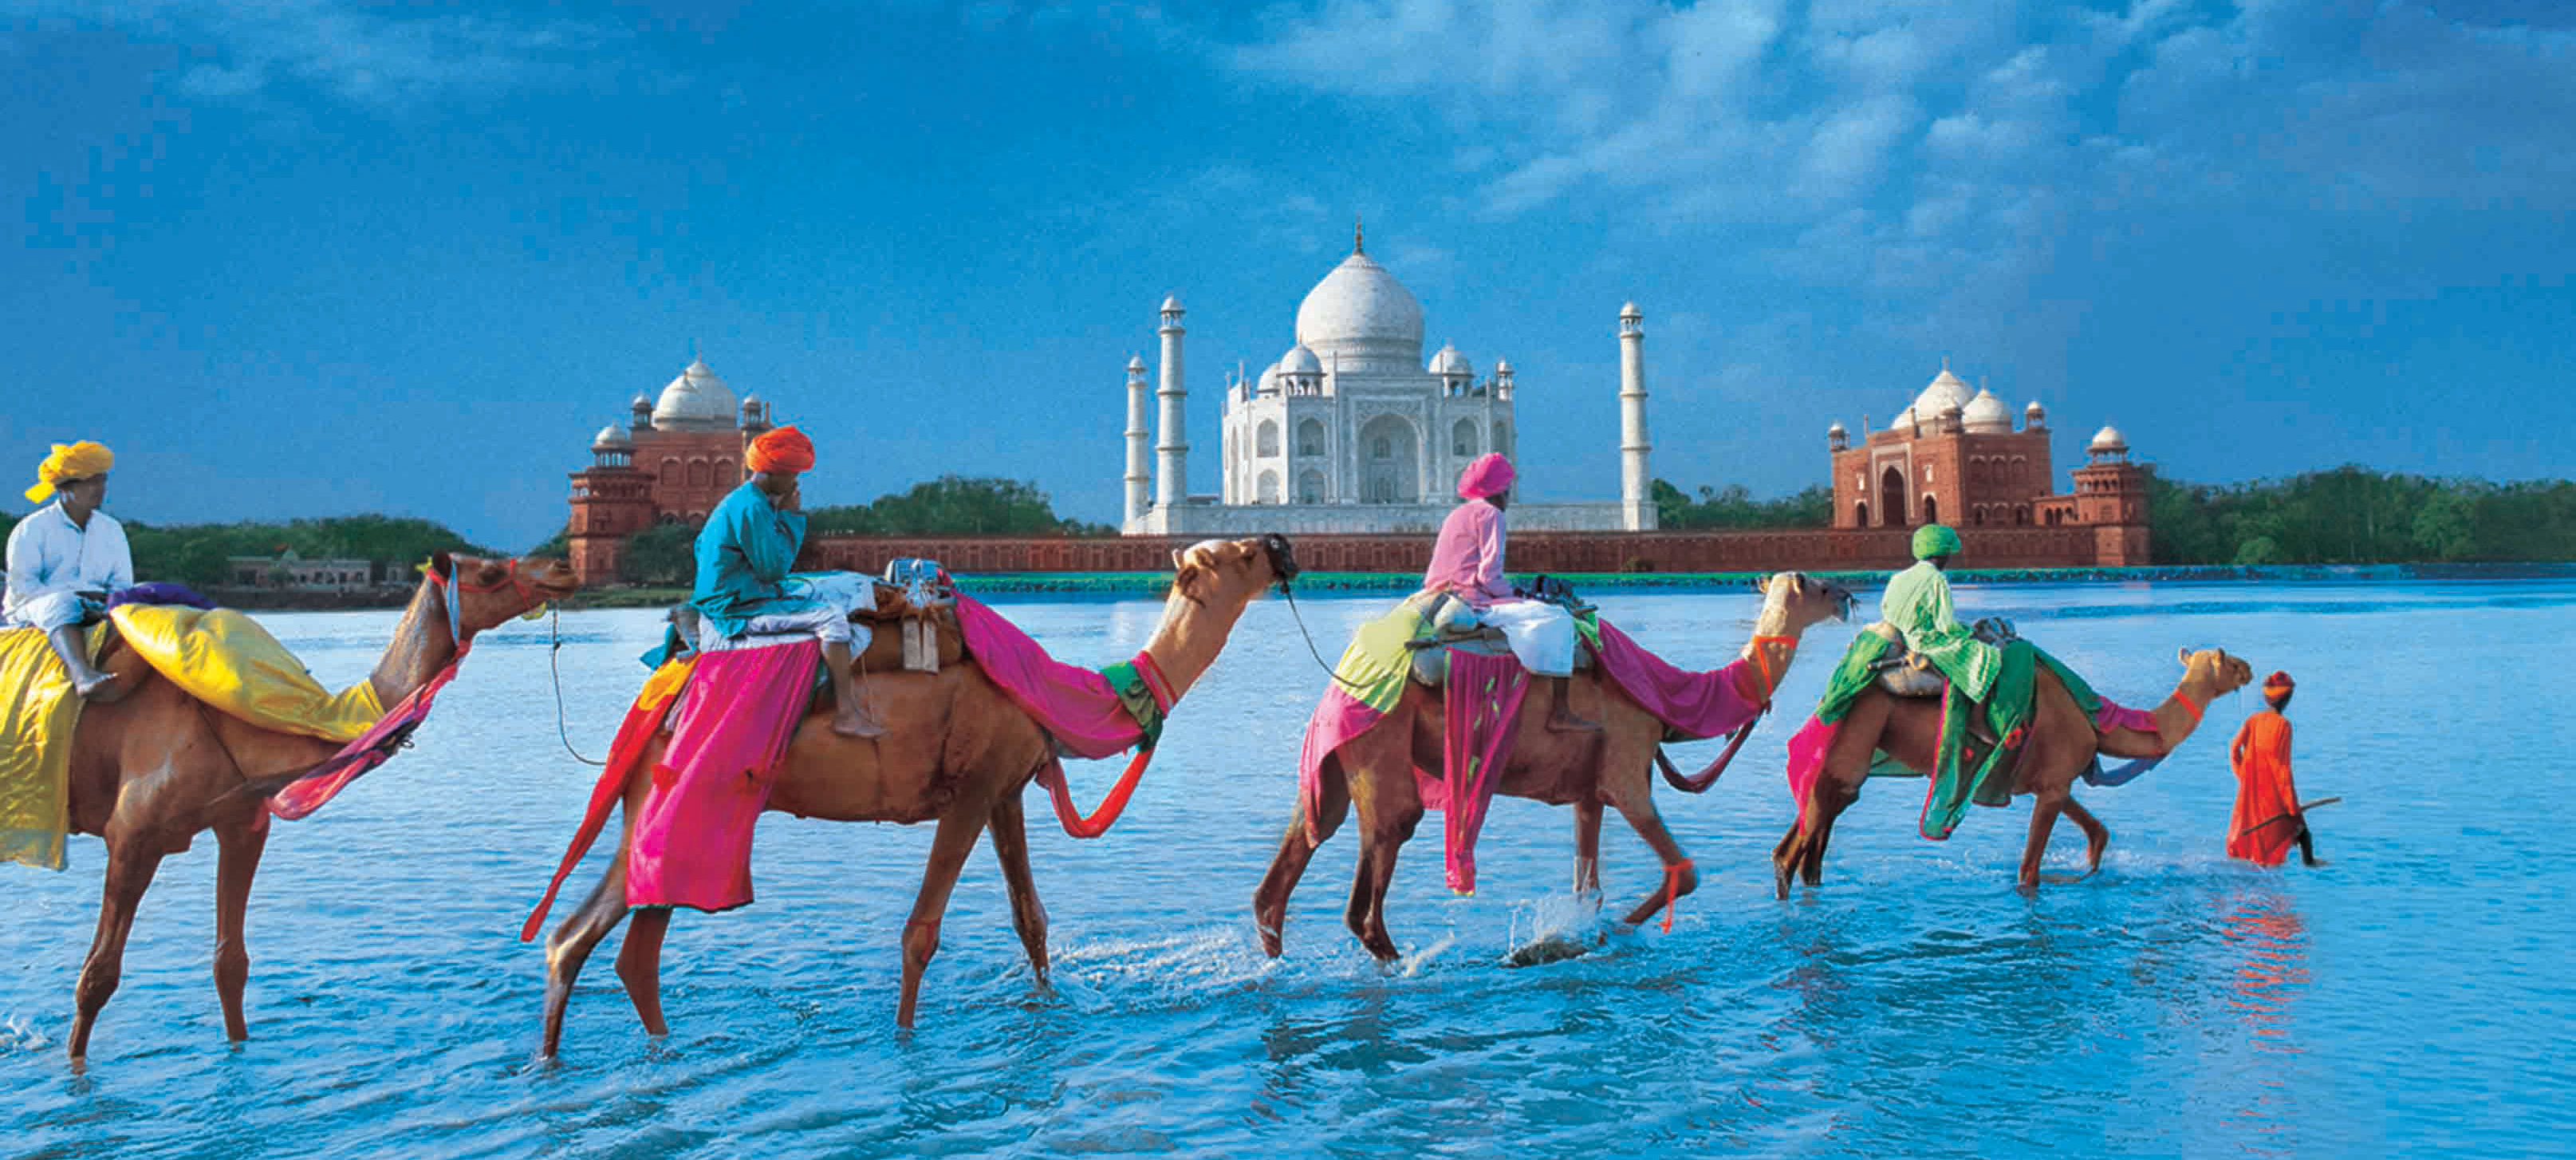 Colourful Camels in front of the Taj Mahal in India